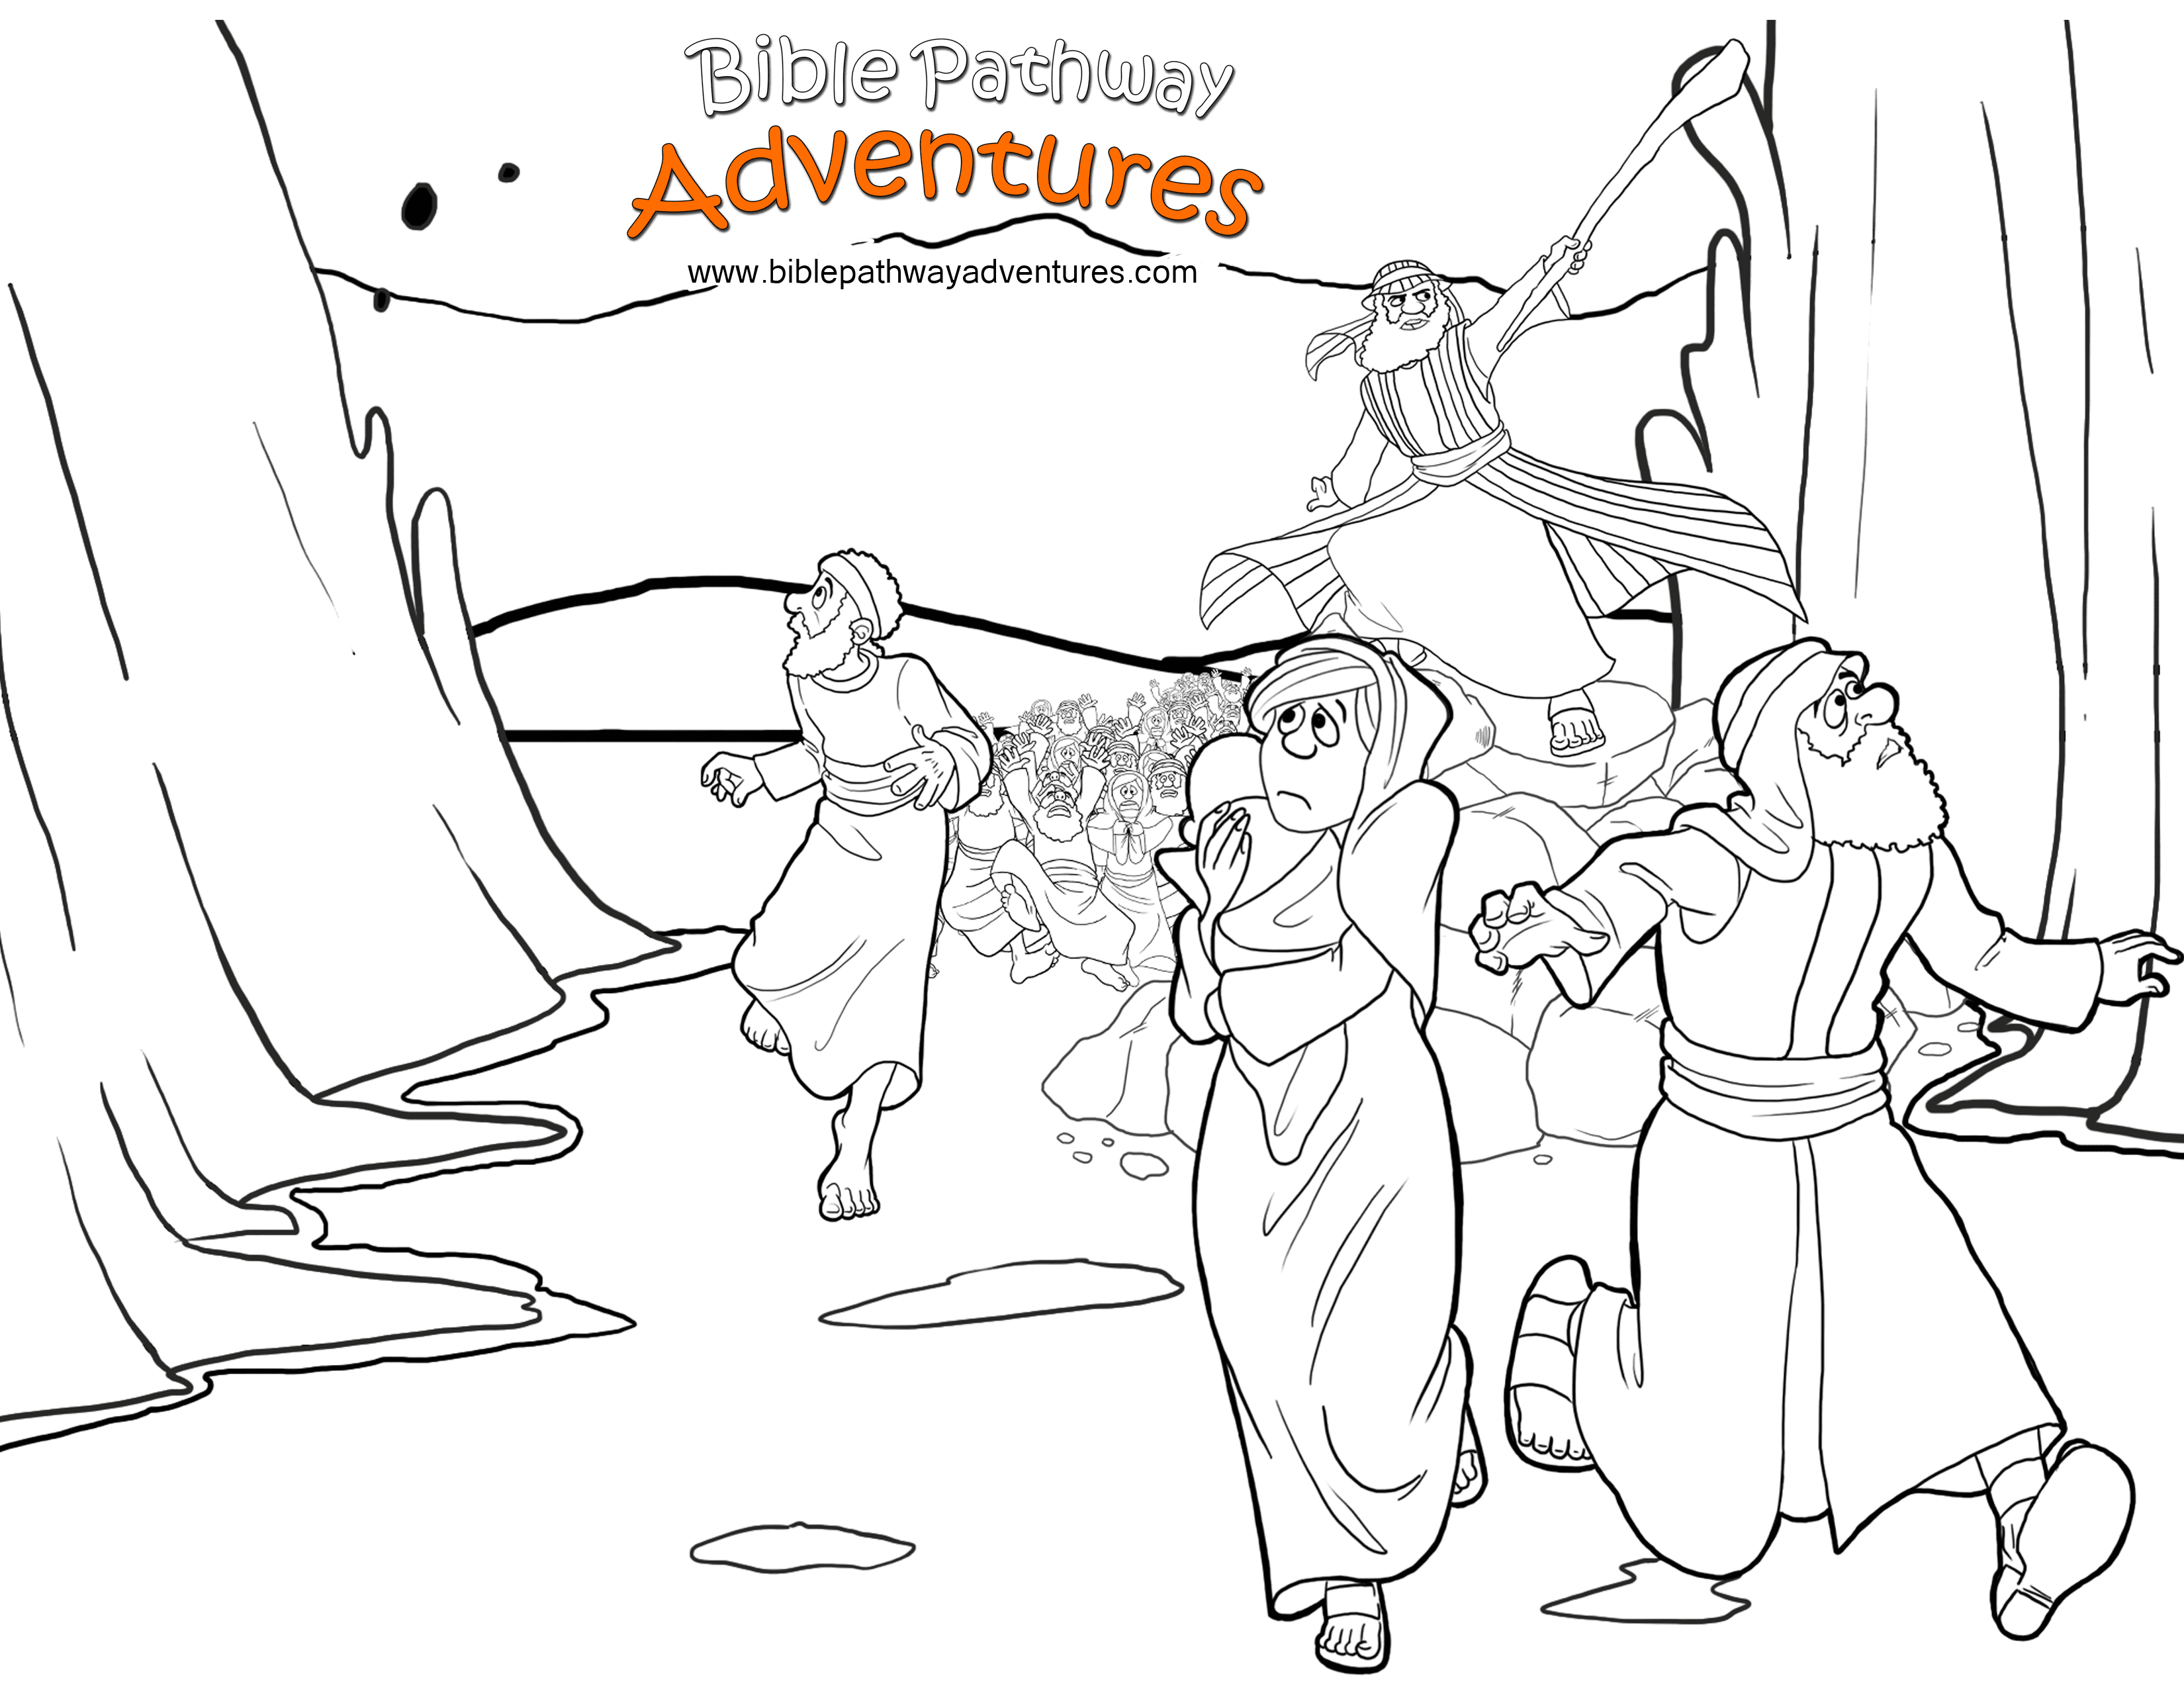 moses red sea crossing coloring pages | Free Printable Bible Coloring Page: Exodus Red Sea Crossing